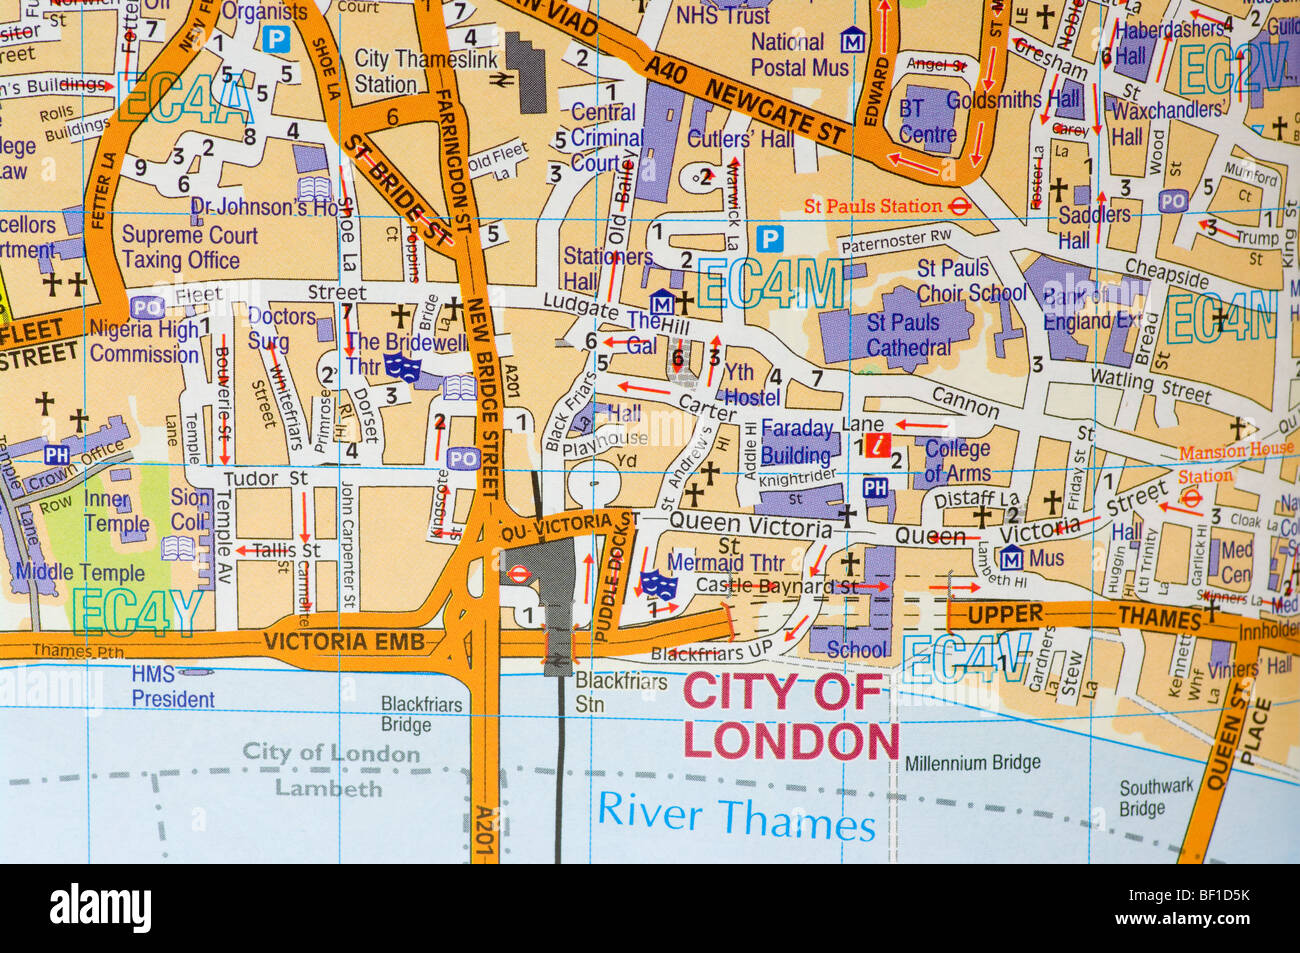 street road map of the city of london uk